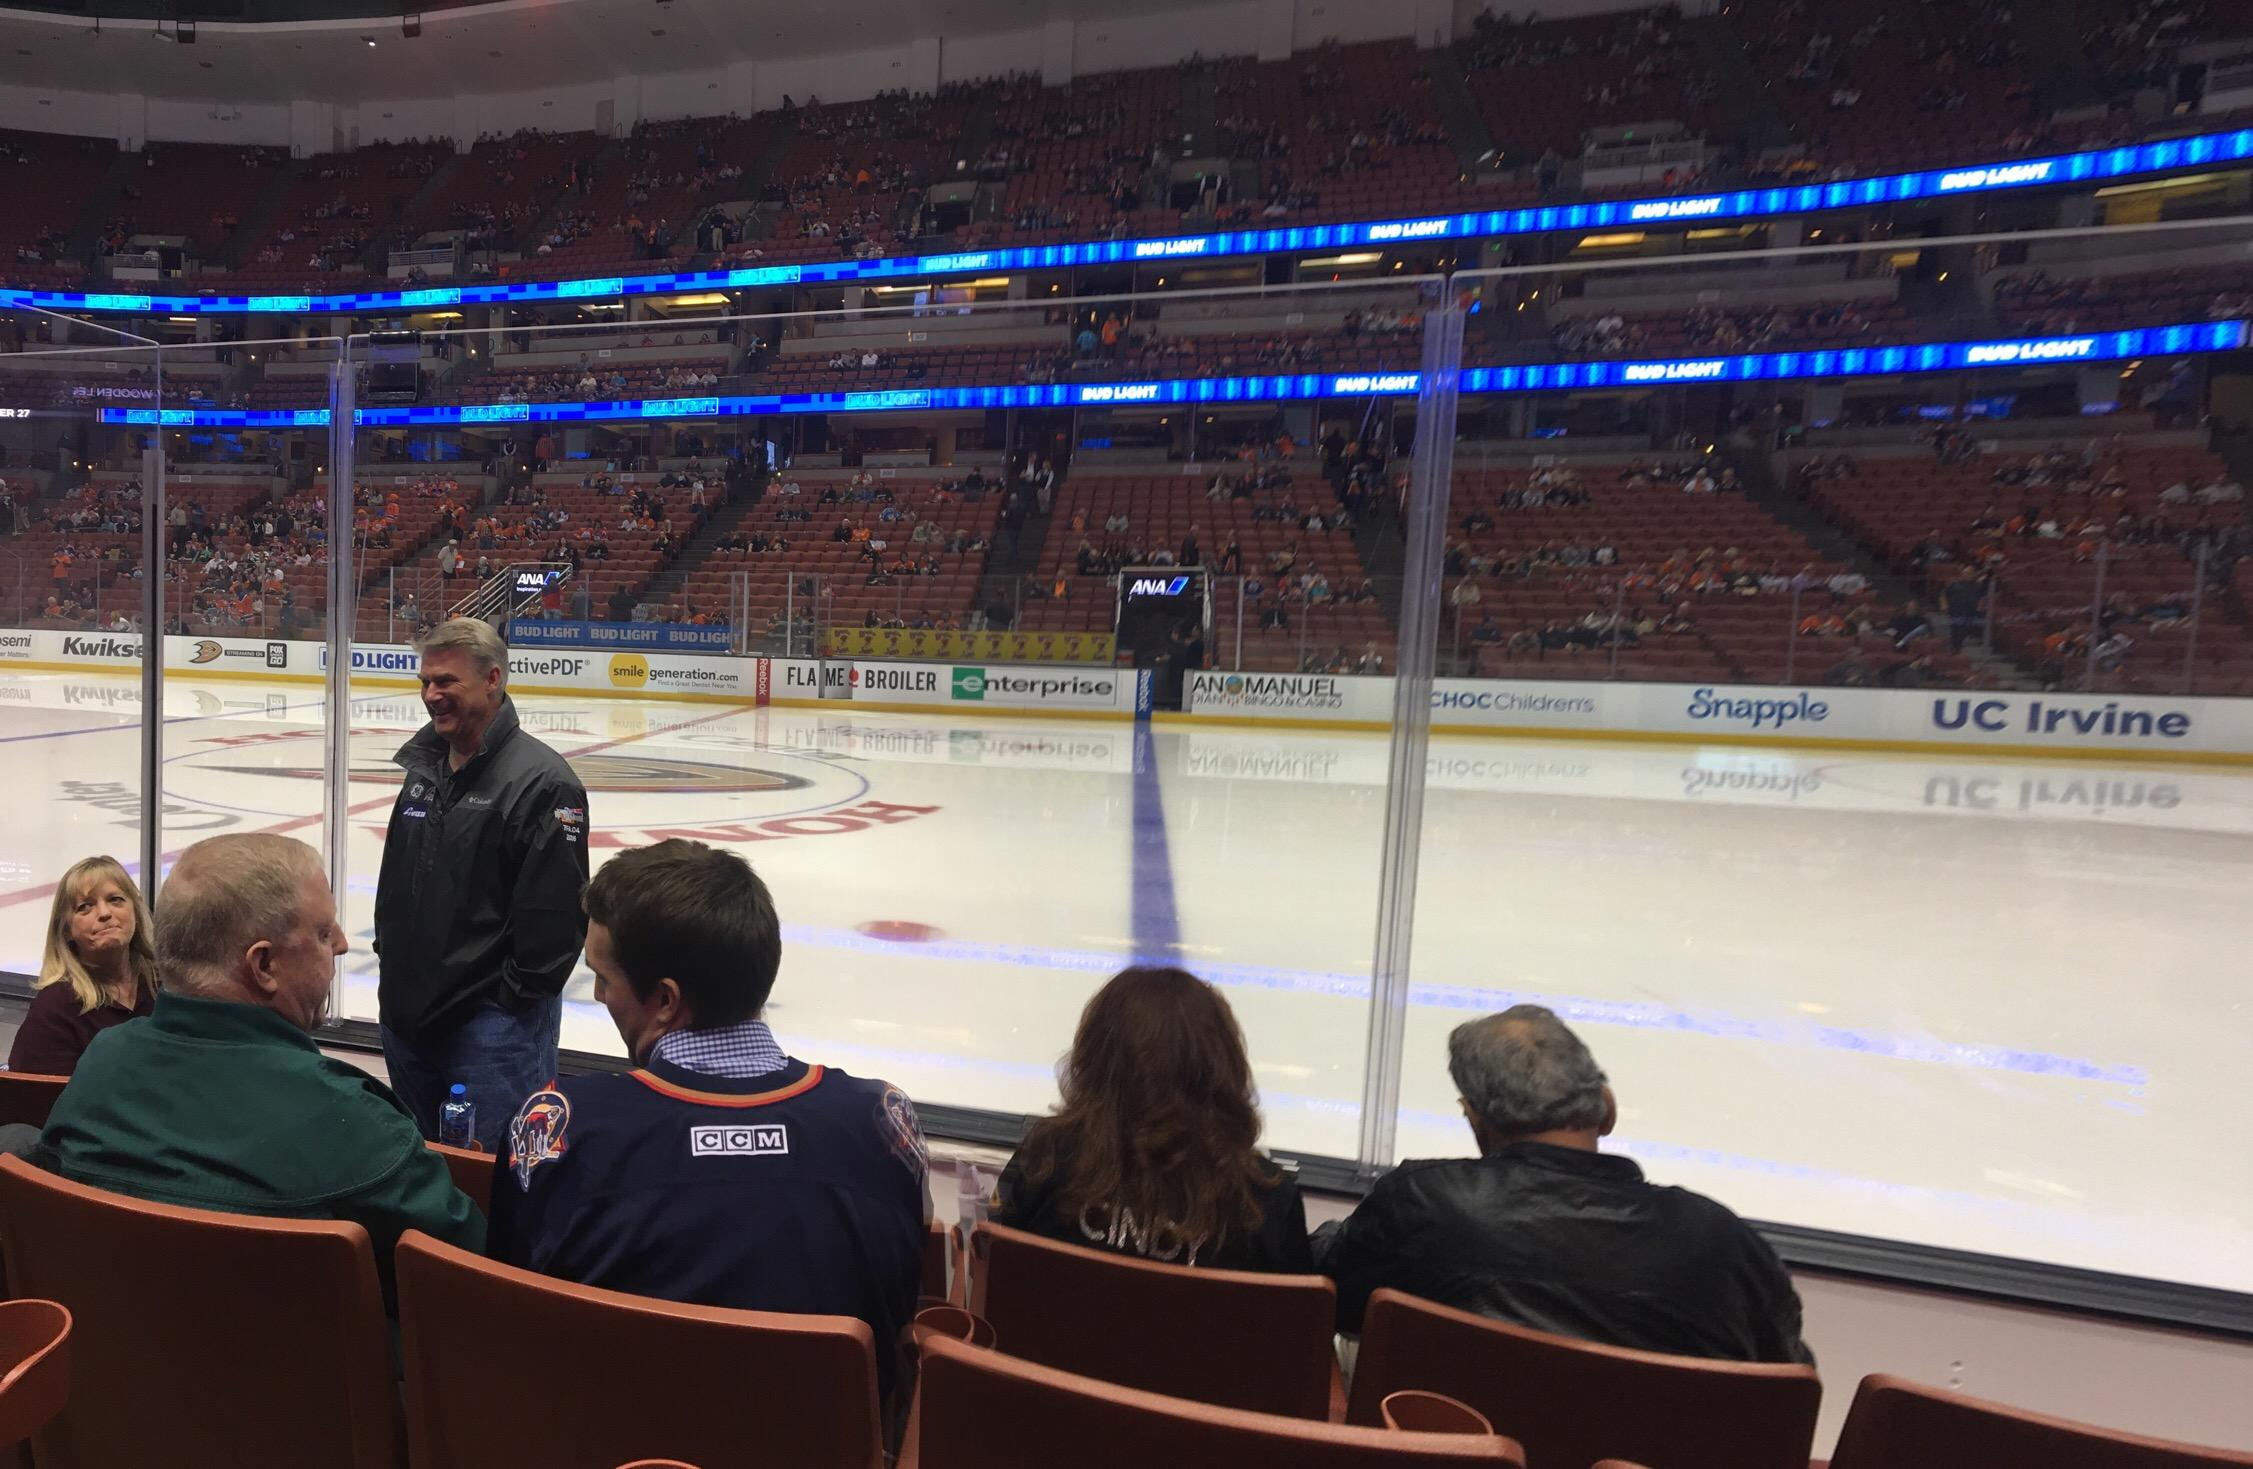 Honda Center Section 221 Row D Seat 10